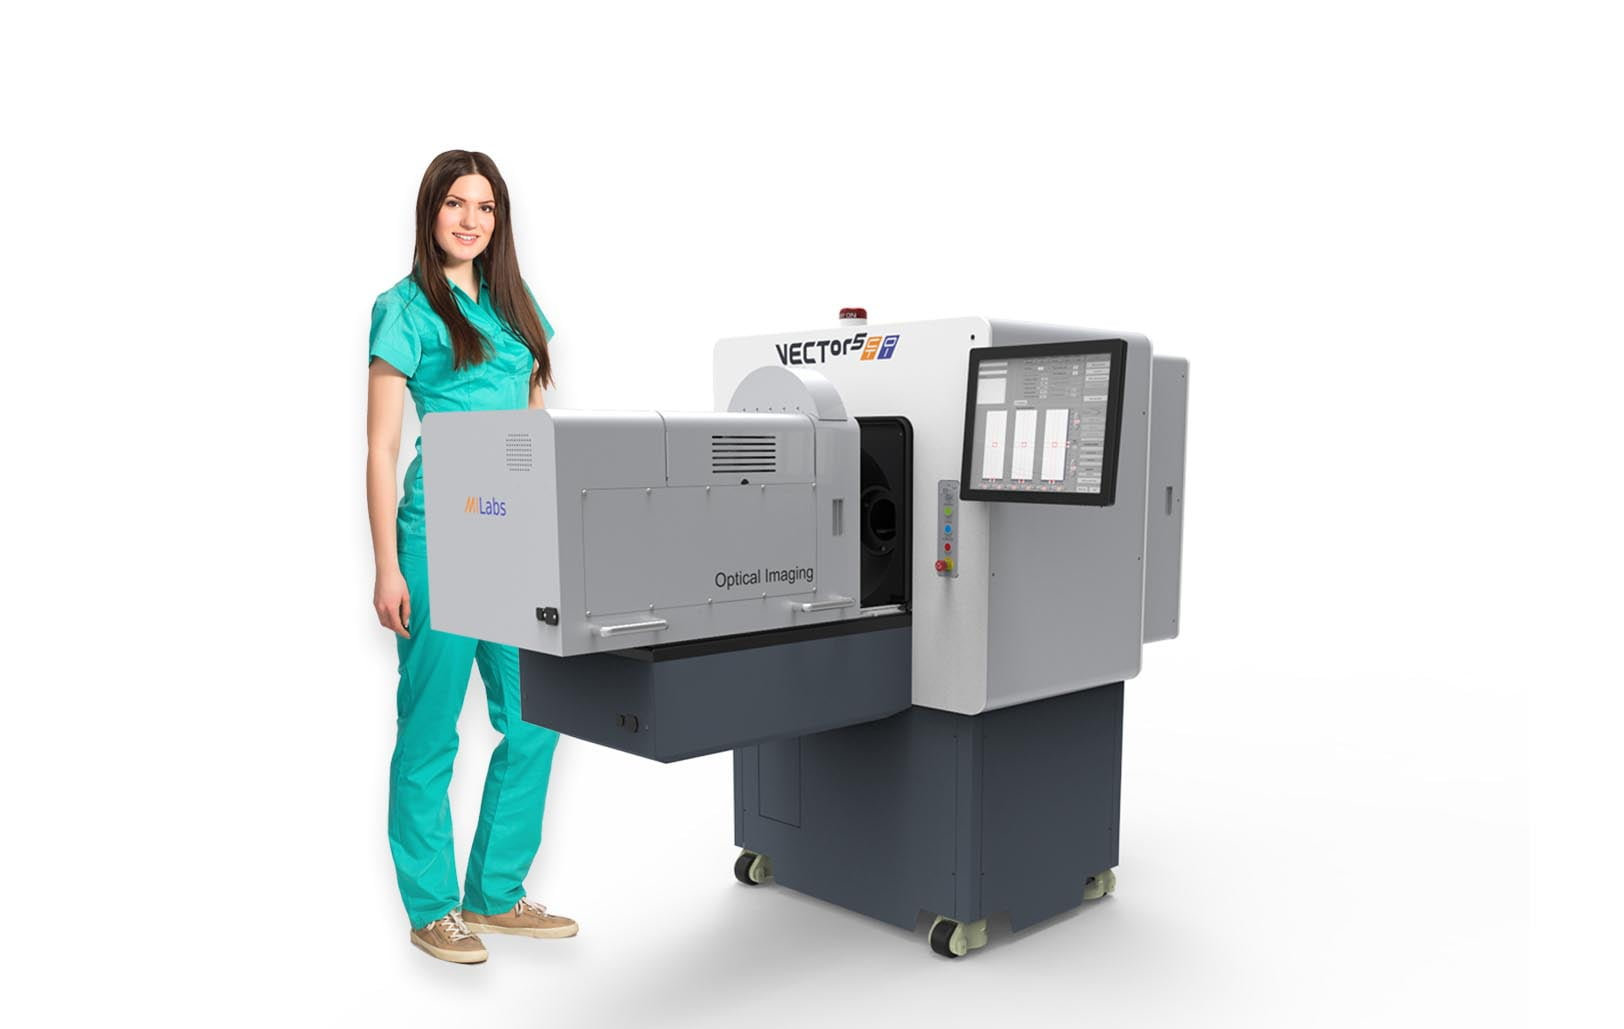 MILabs continues its record-setting pace of preclinical imaging sales into the vacation period